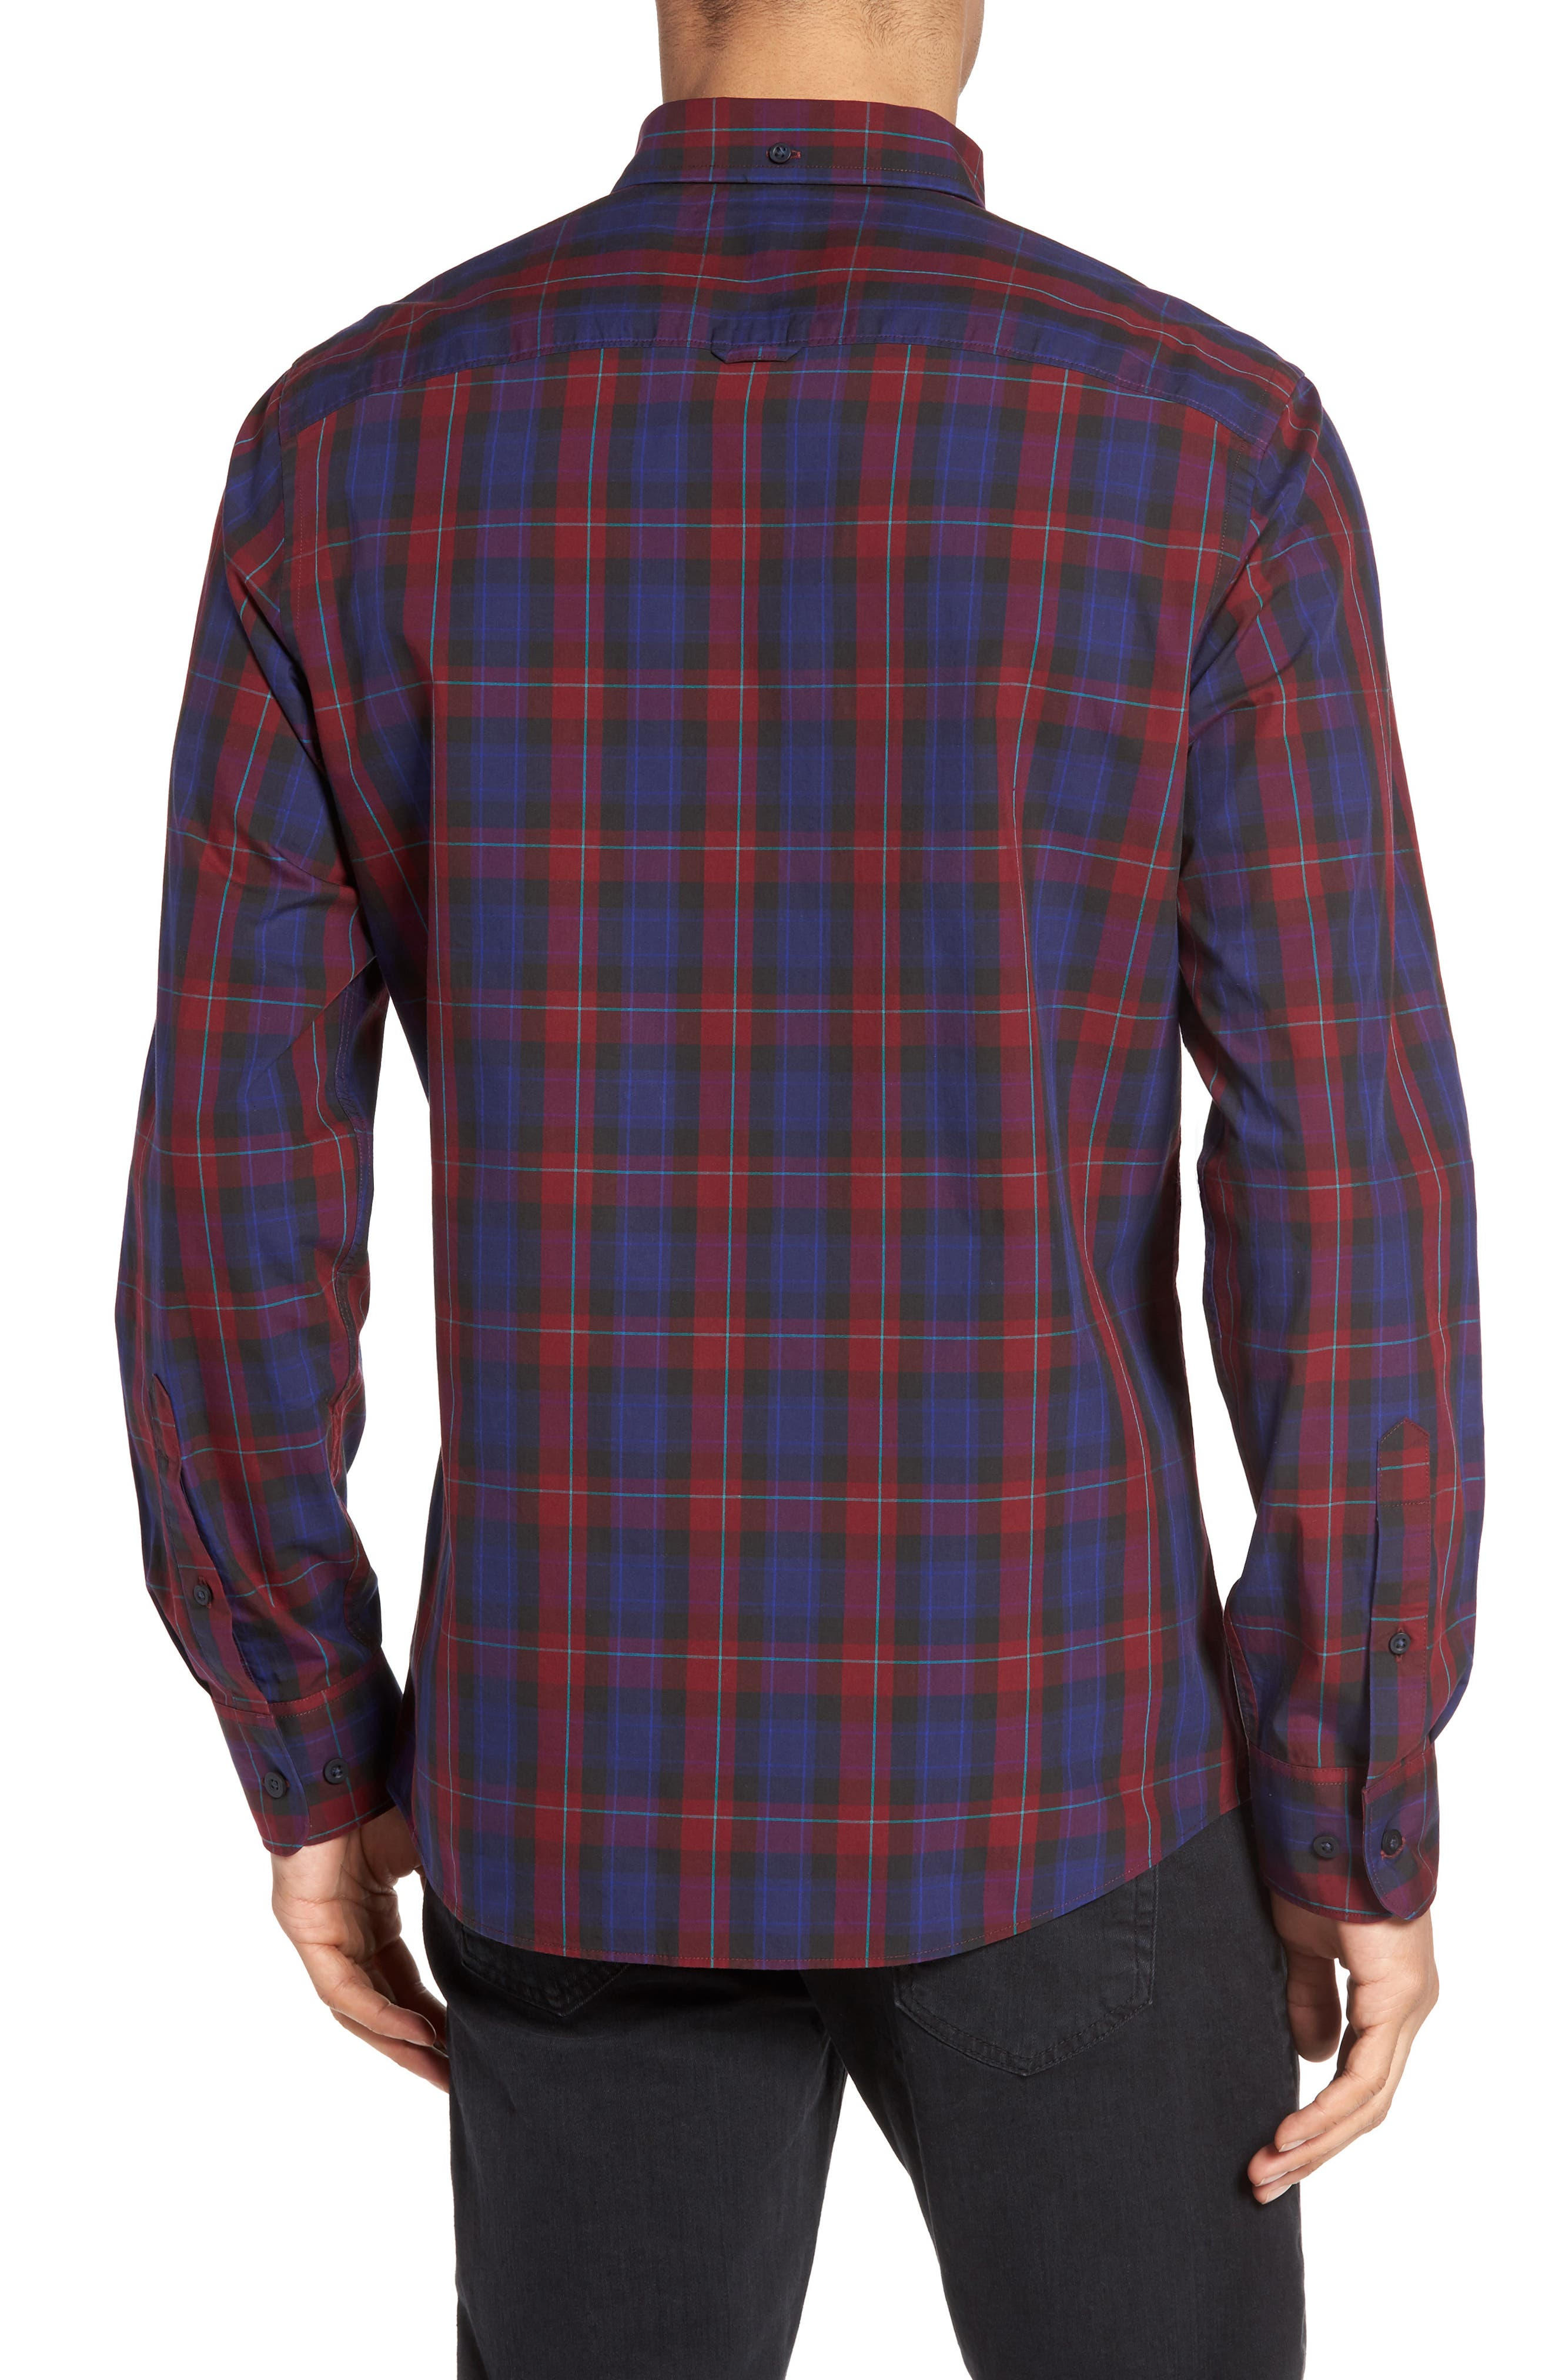 Slim Fit Plaid Sport Shirt,                             Alternate thumbnail 2, color,                             Red Ruby Large Check